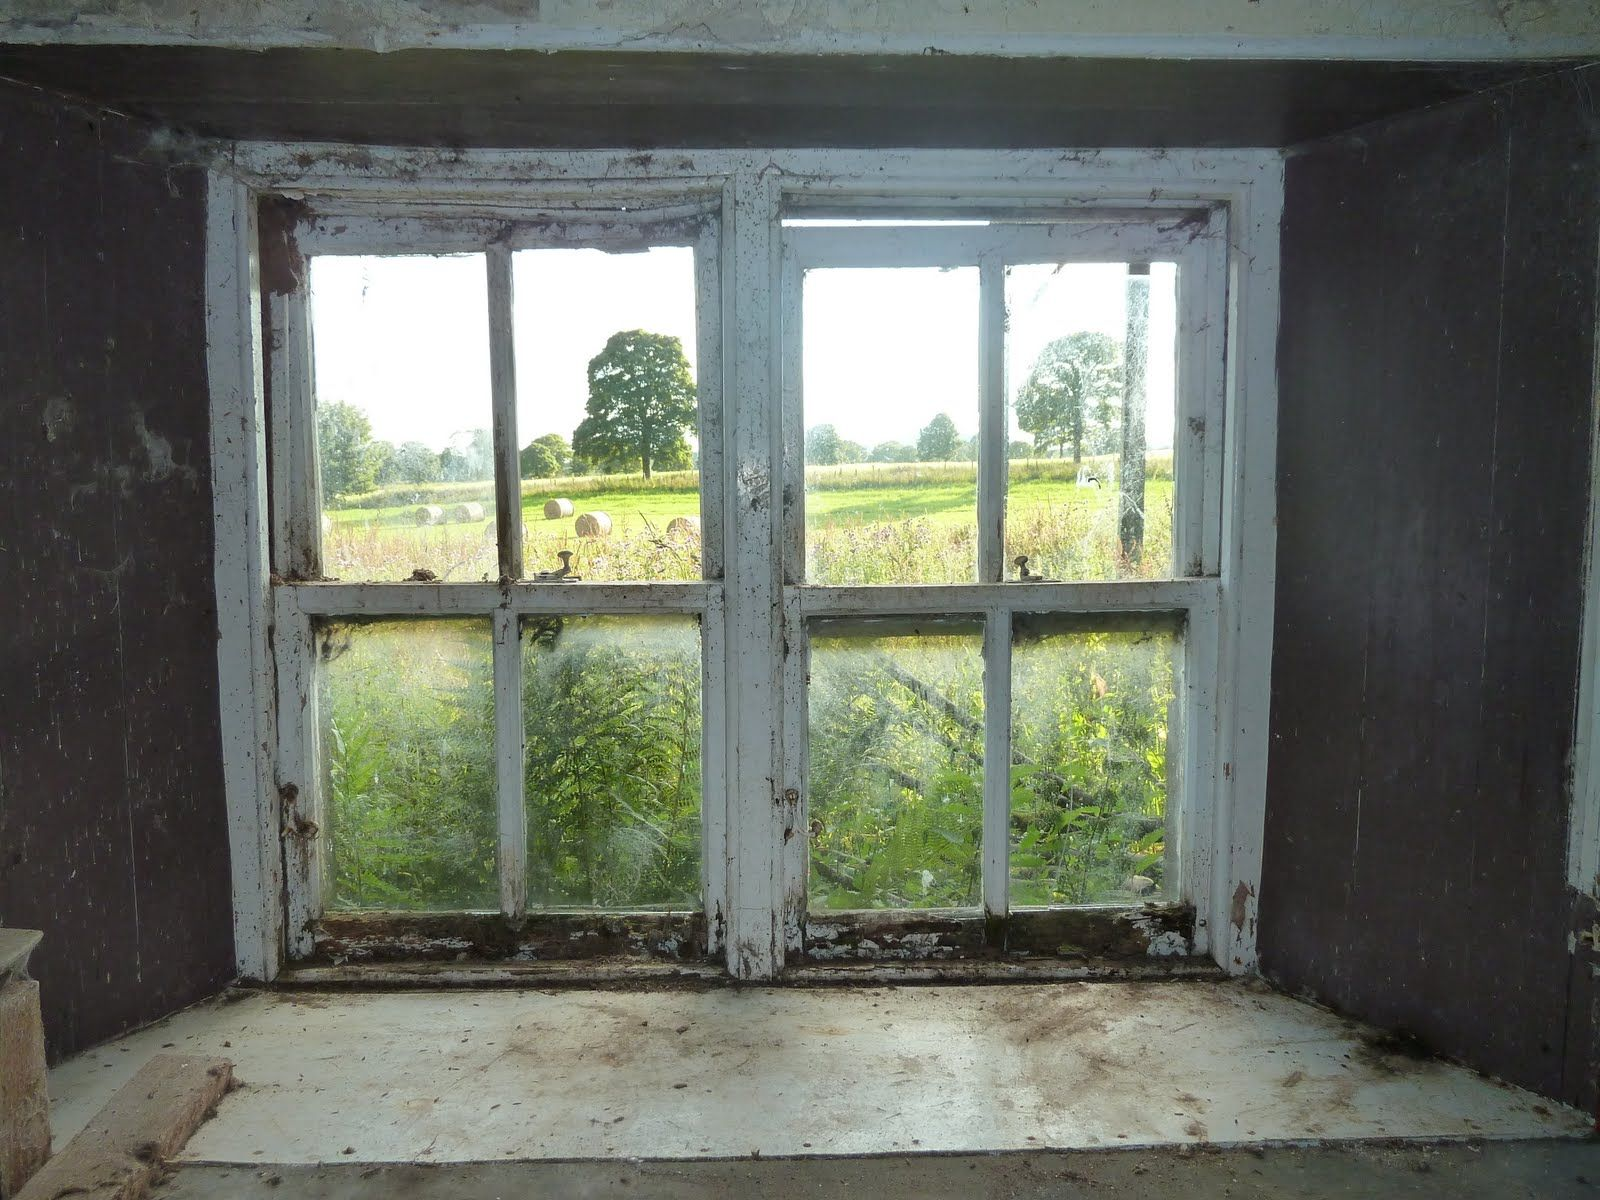 The farm at the back of beyond: Scary monsters | Old windows, Interior  windows, Windows